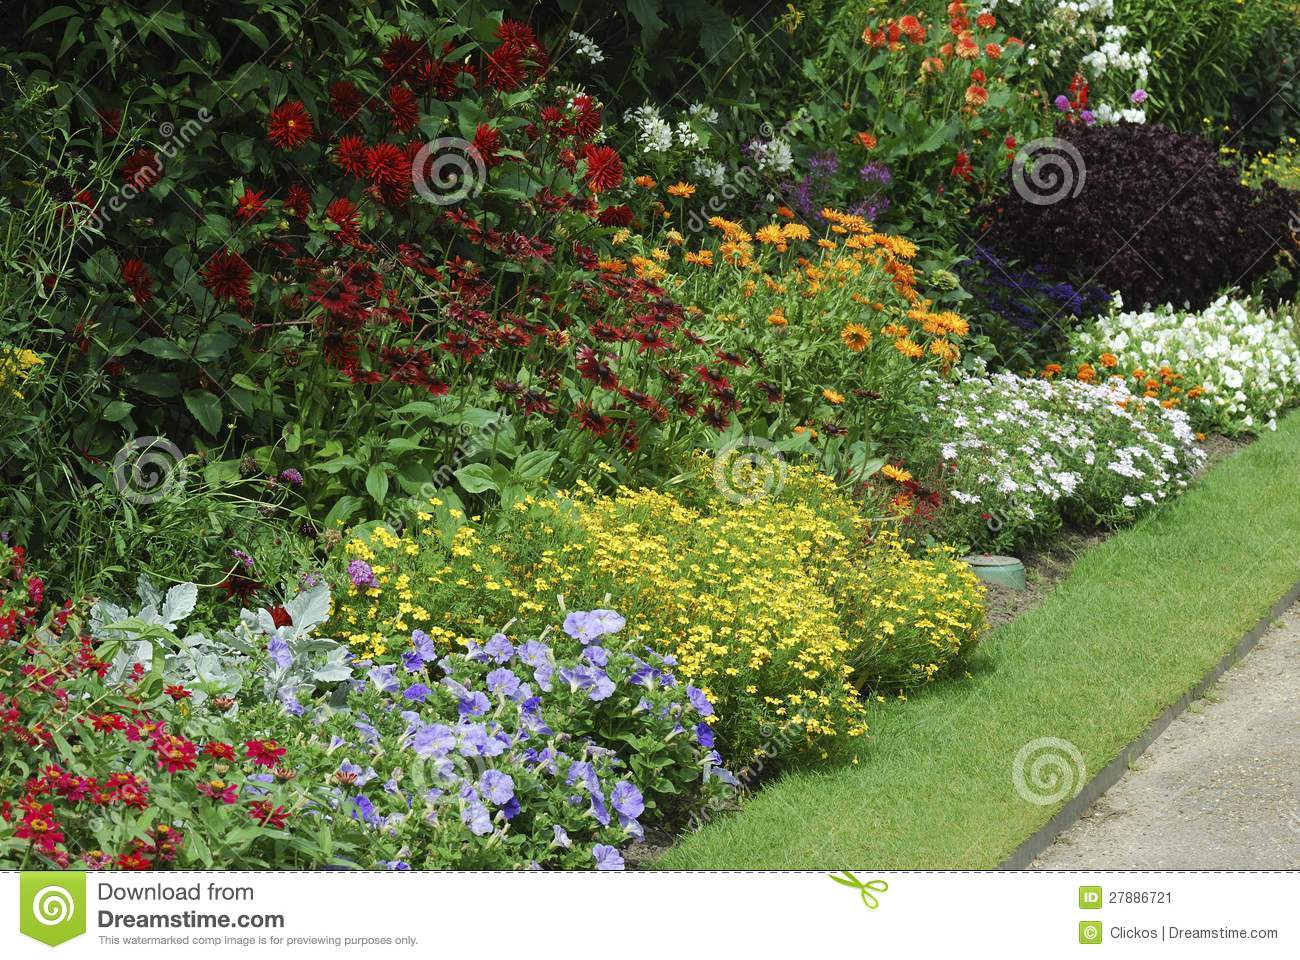 flower bed with assorted plants stock image - image: 27886721